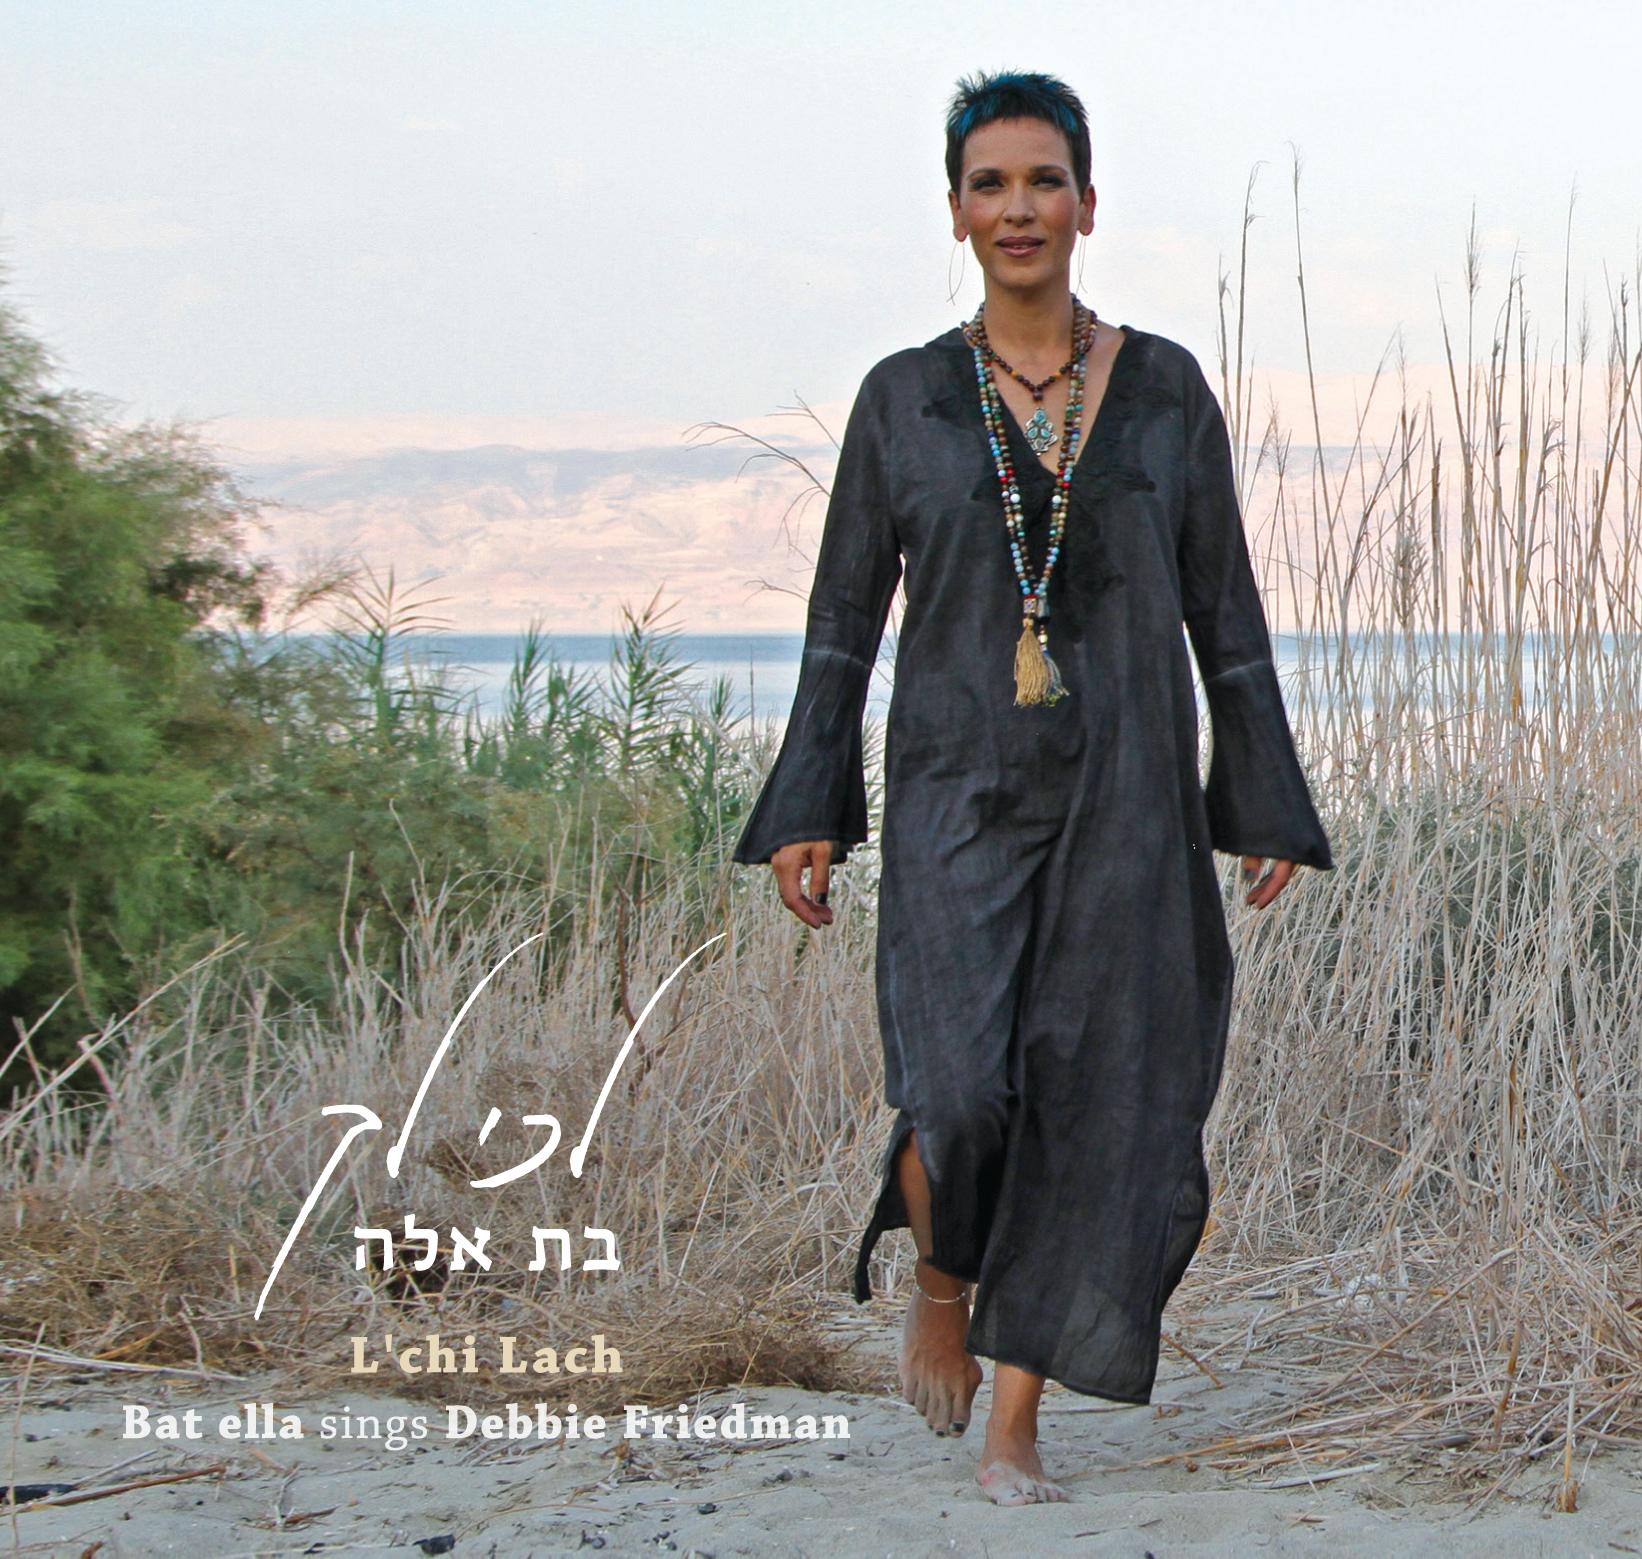 L'CHI LACH contains all-Hebrew versions of the songs of Debbie Friedman.